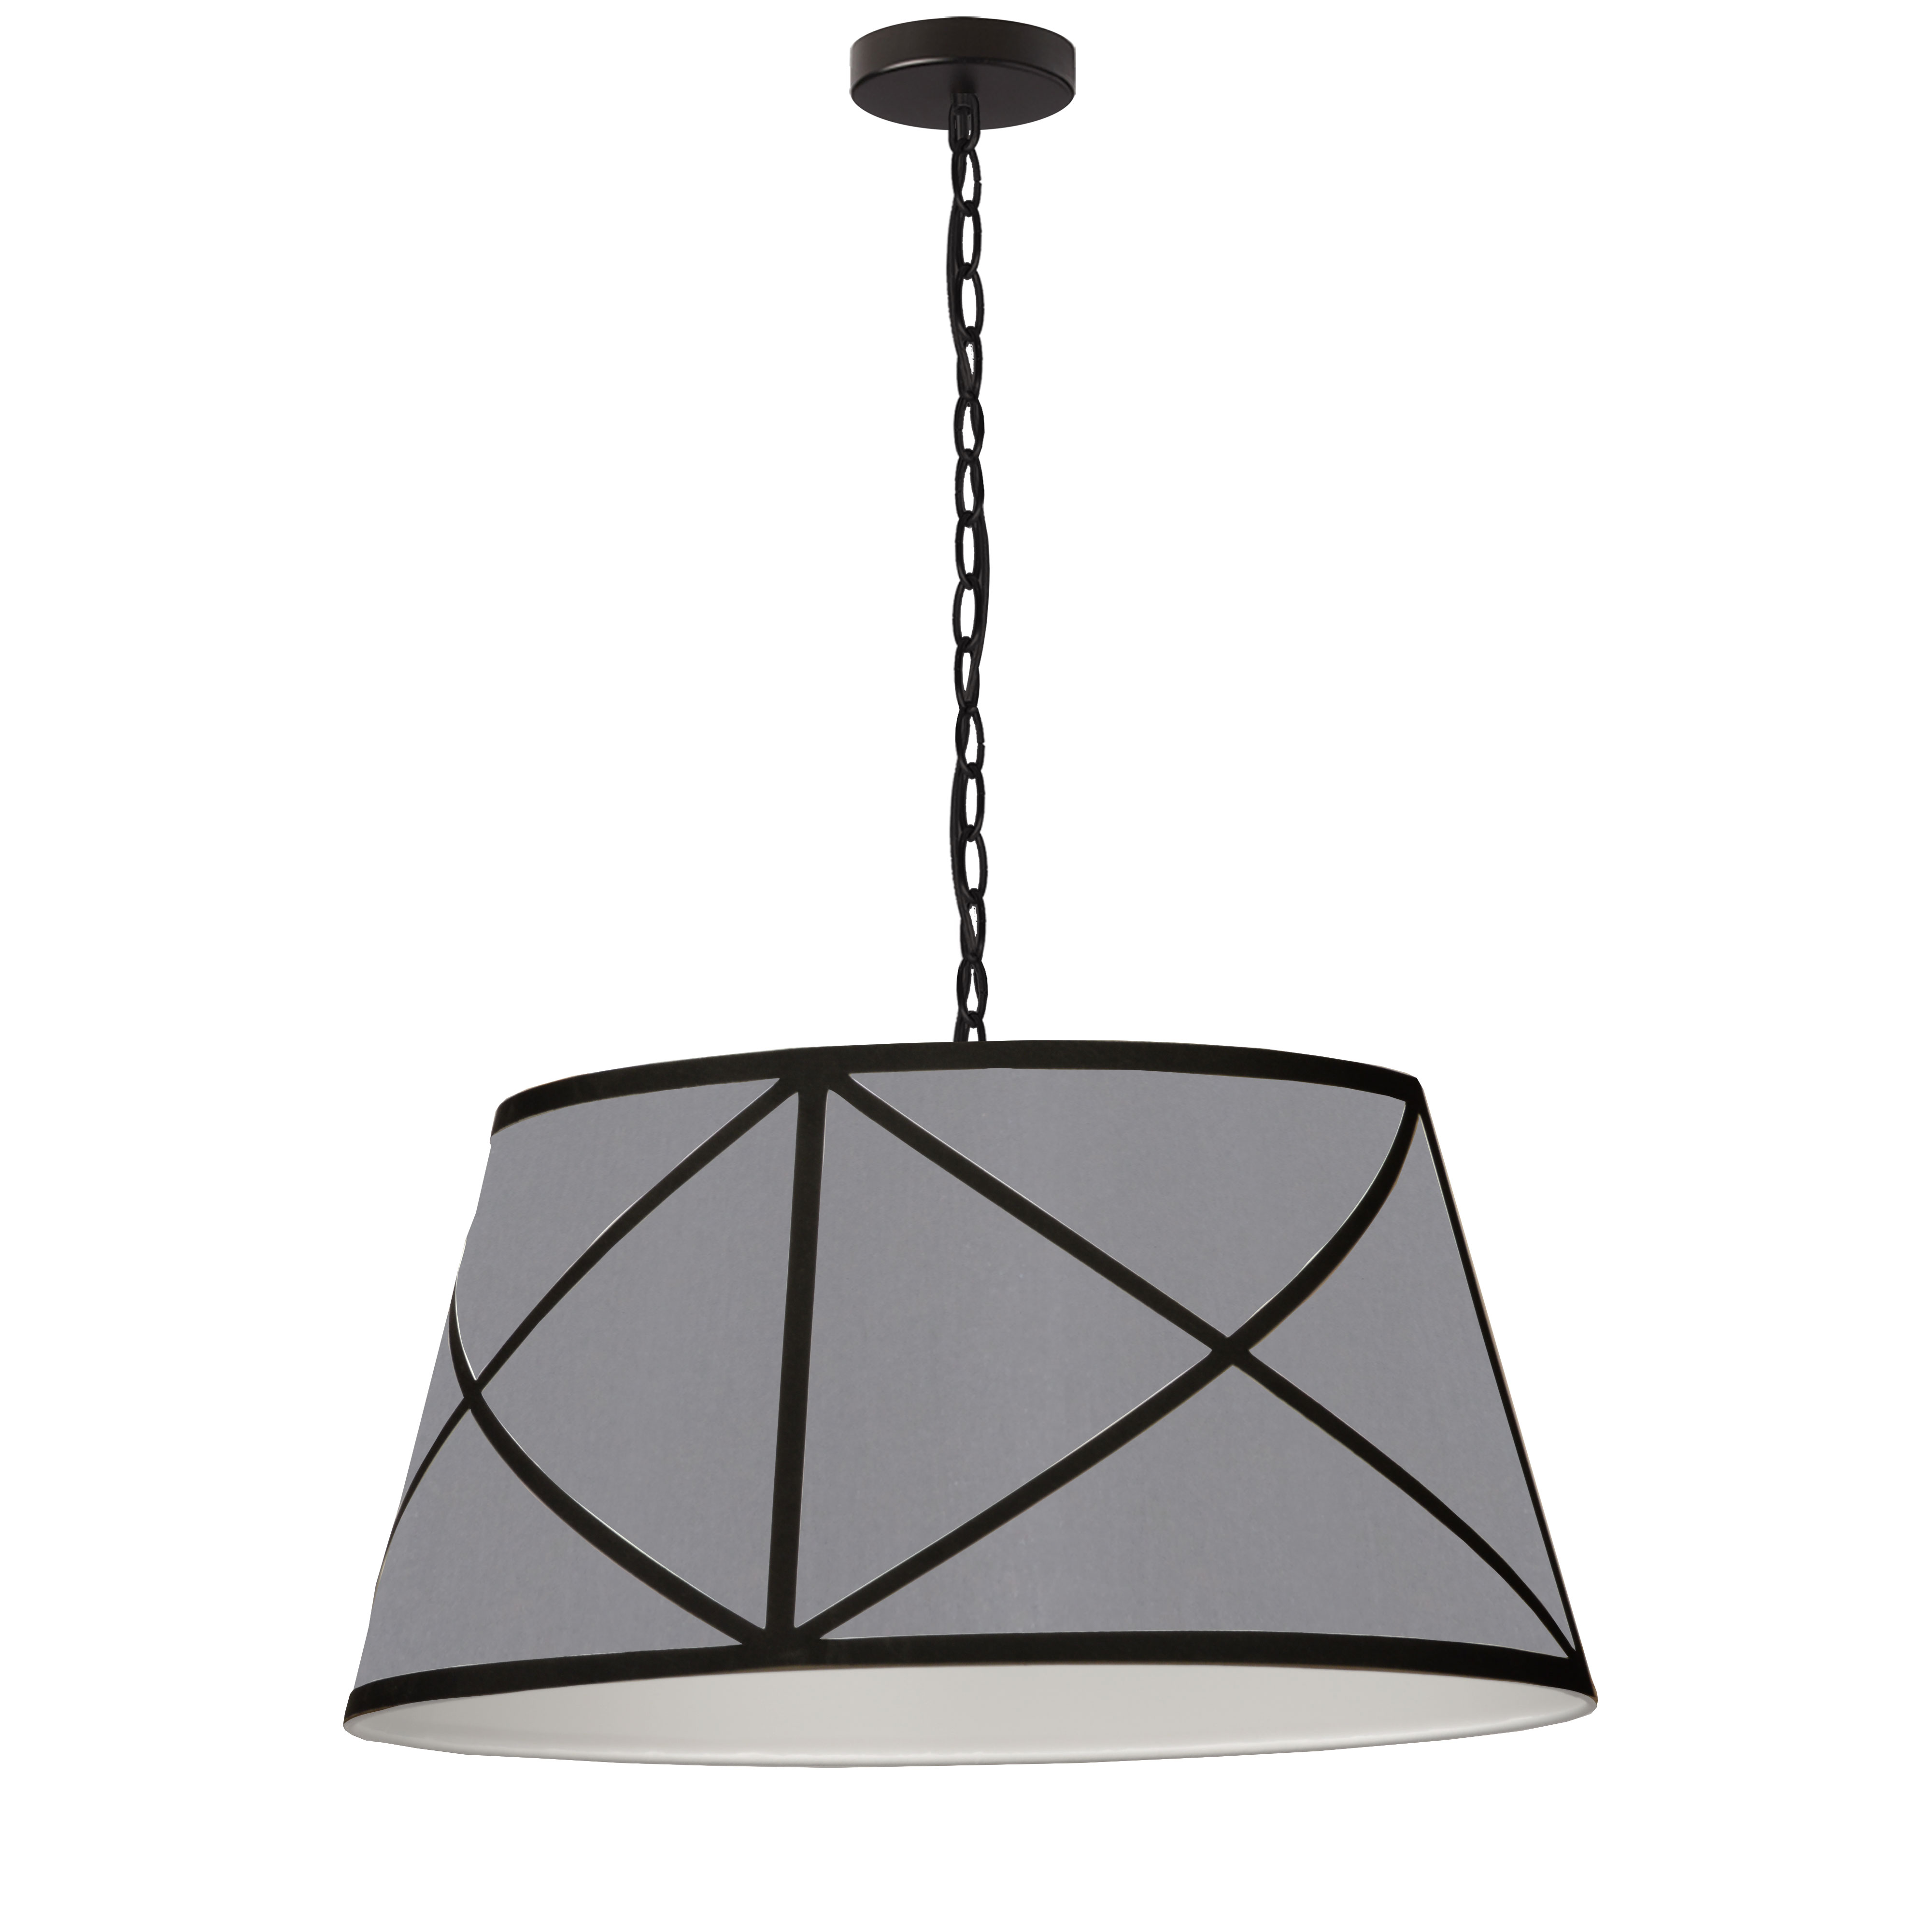 1LT Incandescent Pendant, MB w/ GRY & BK Shade